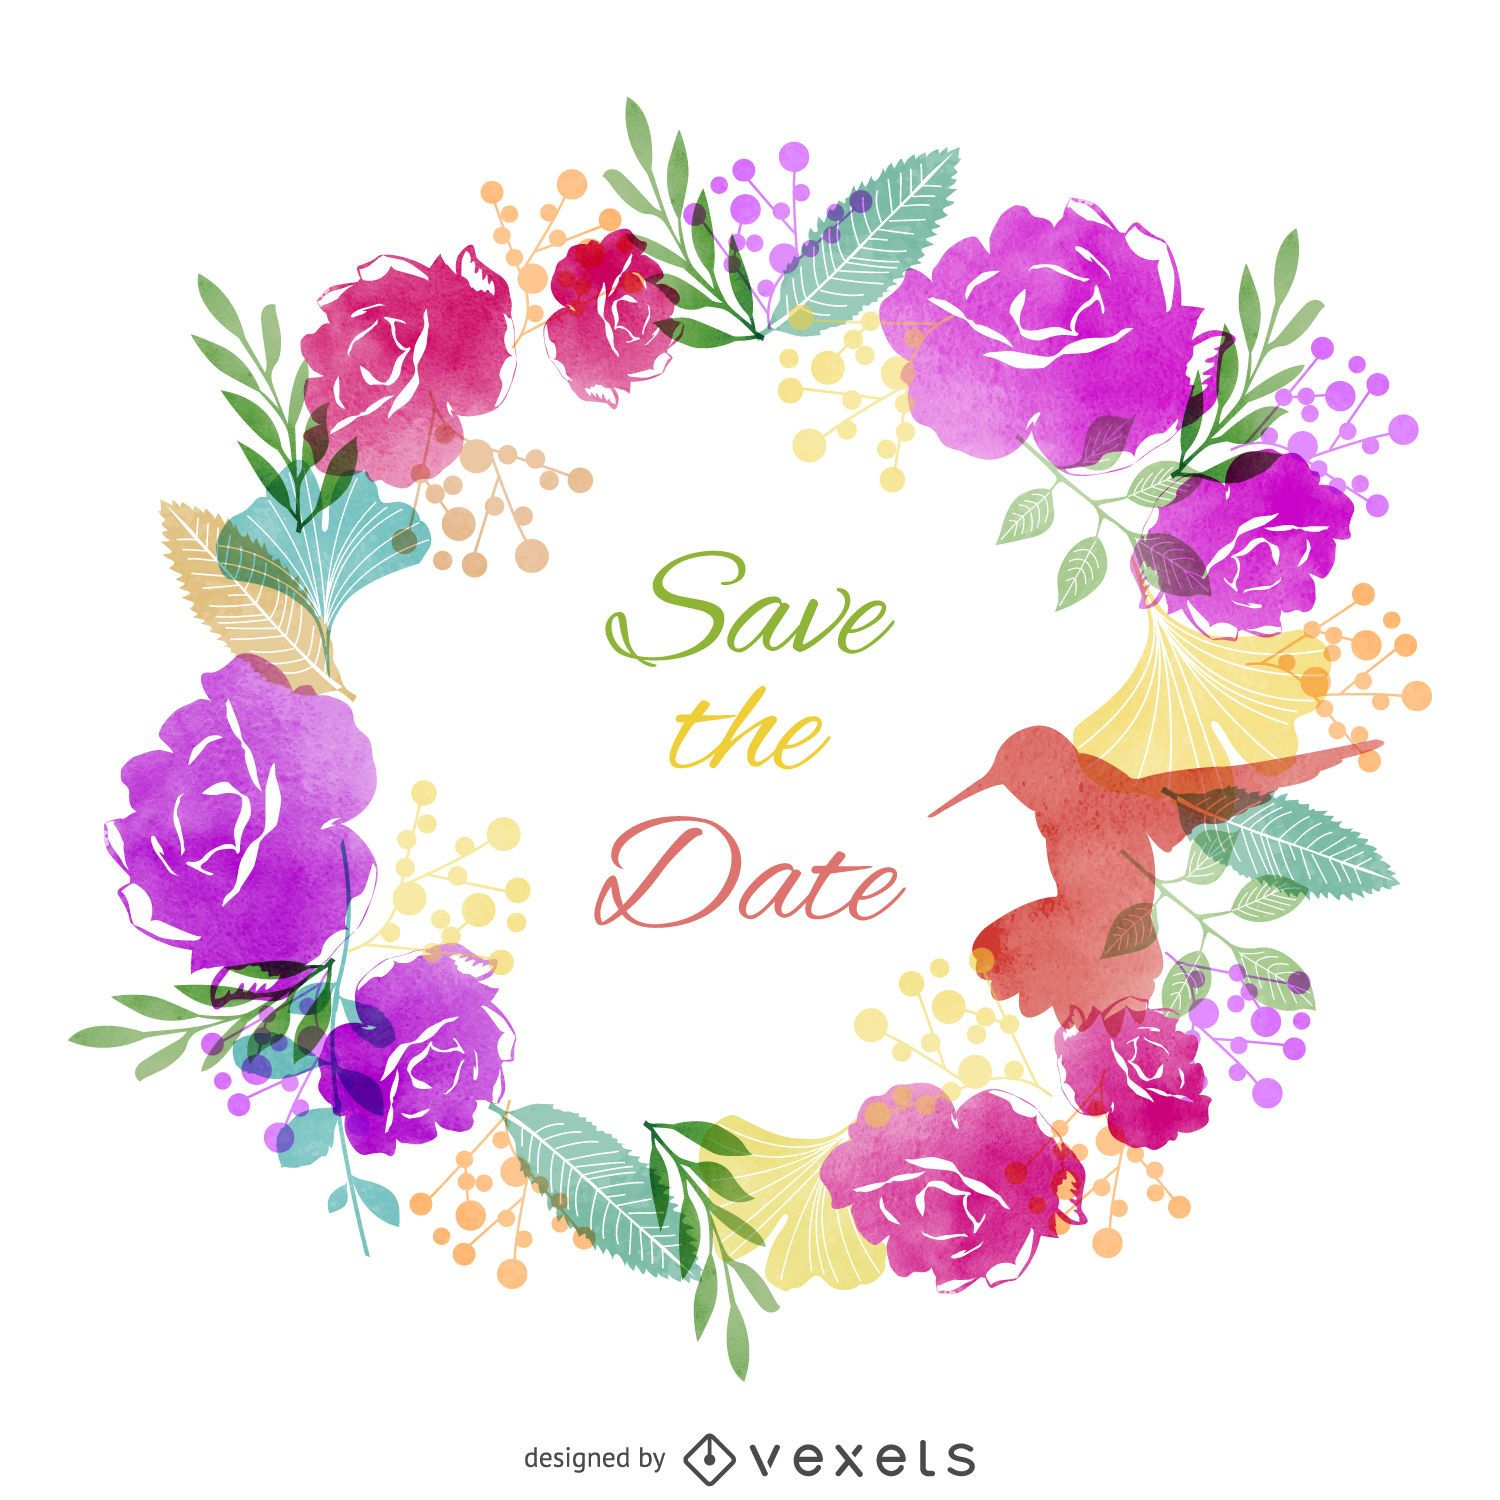 Save The Date Watercolor Label Vector Download